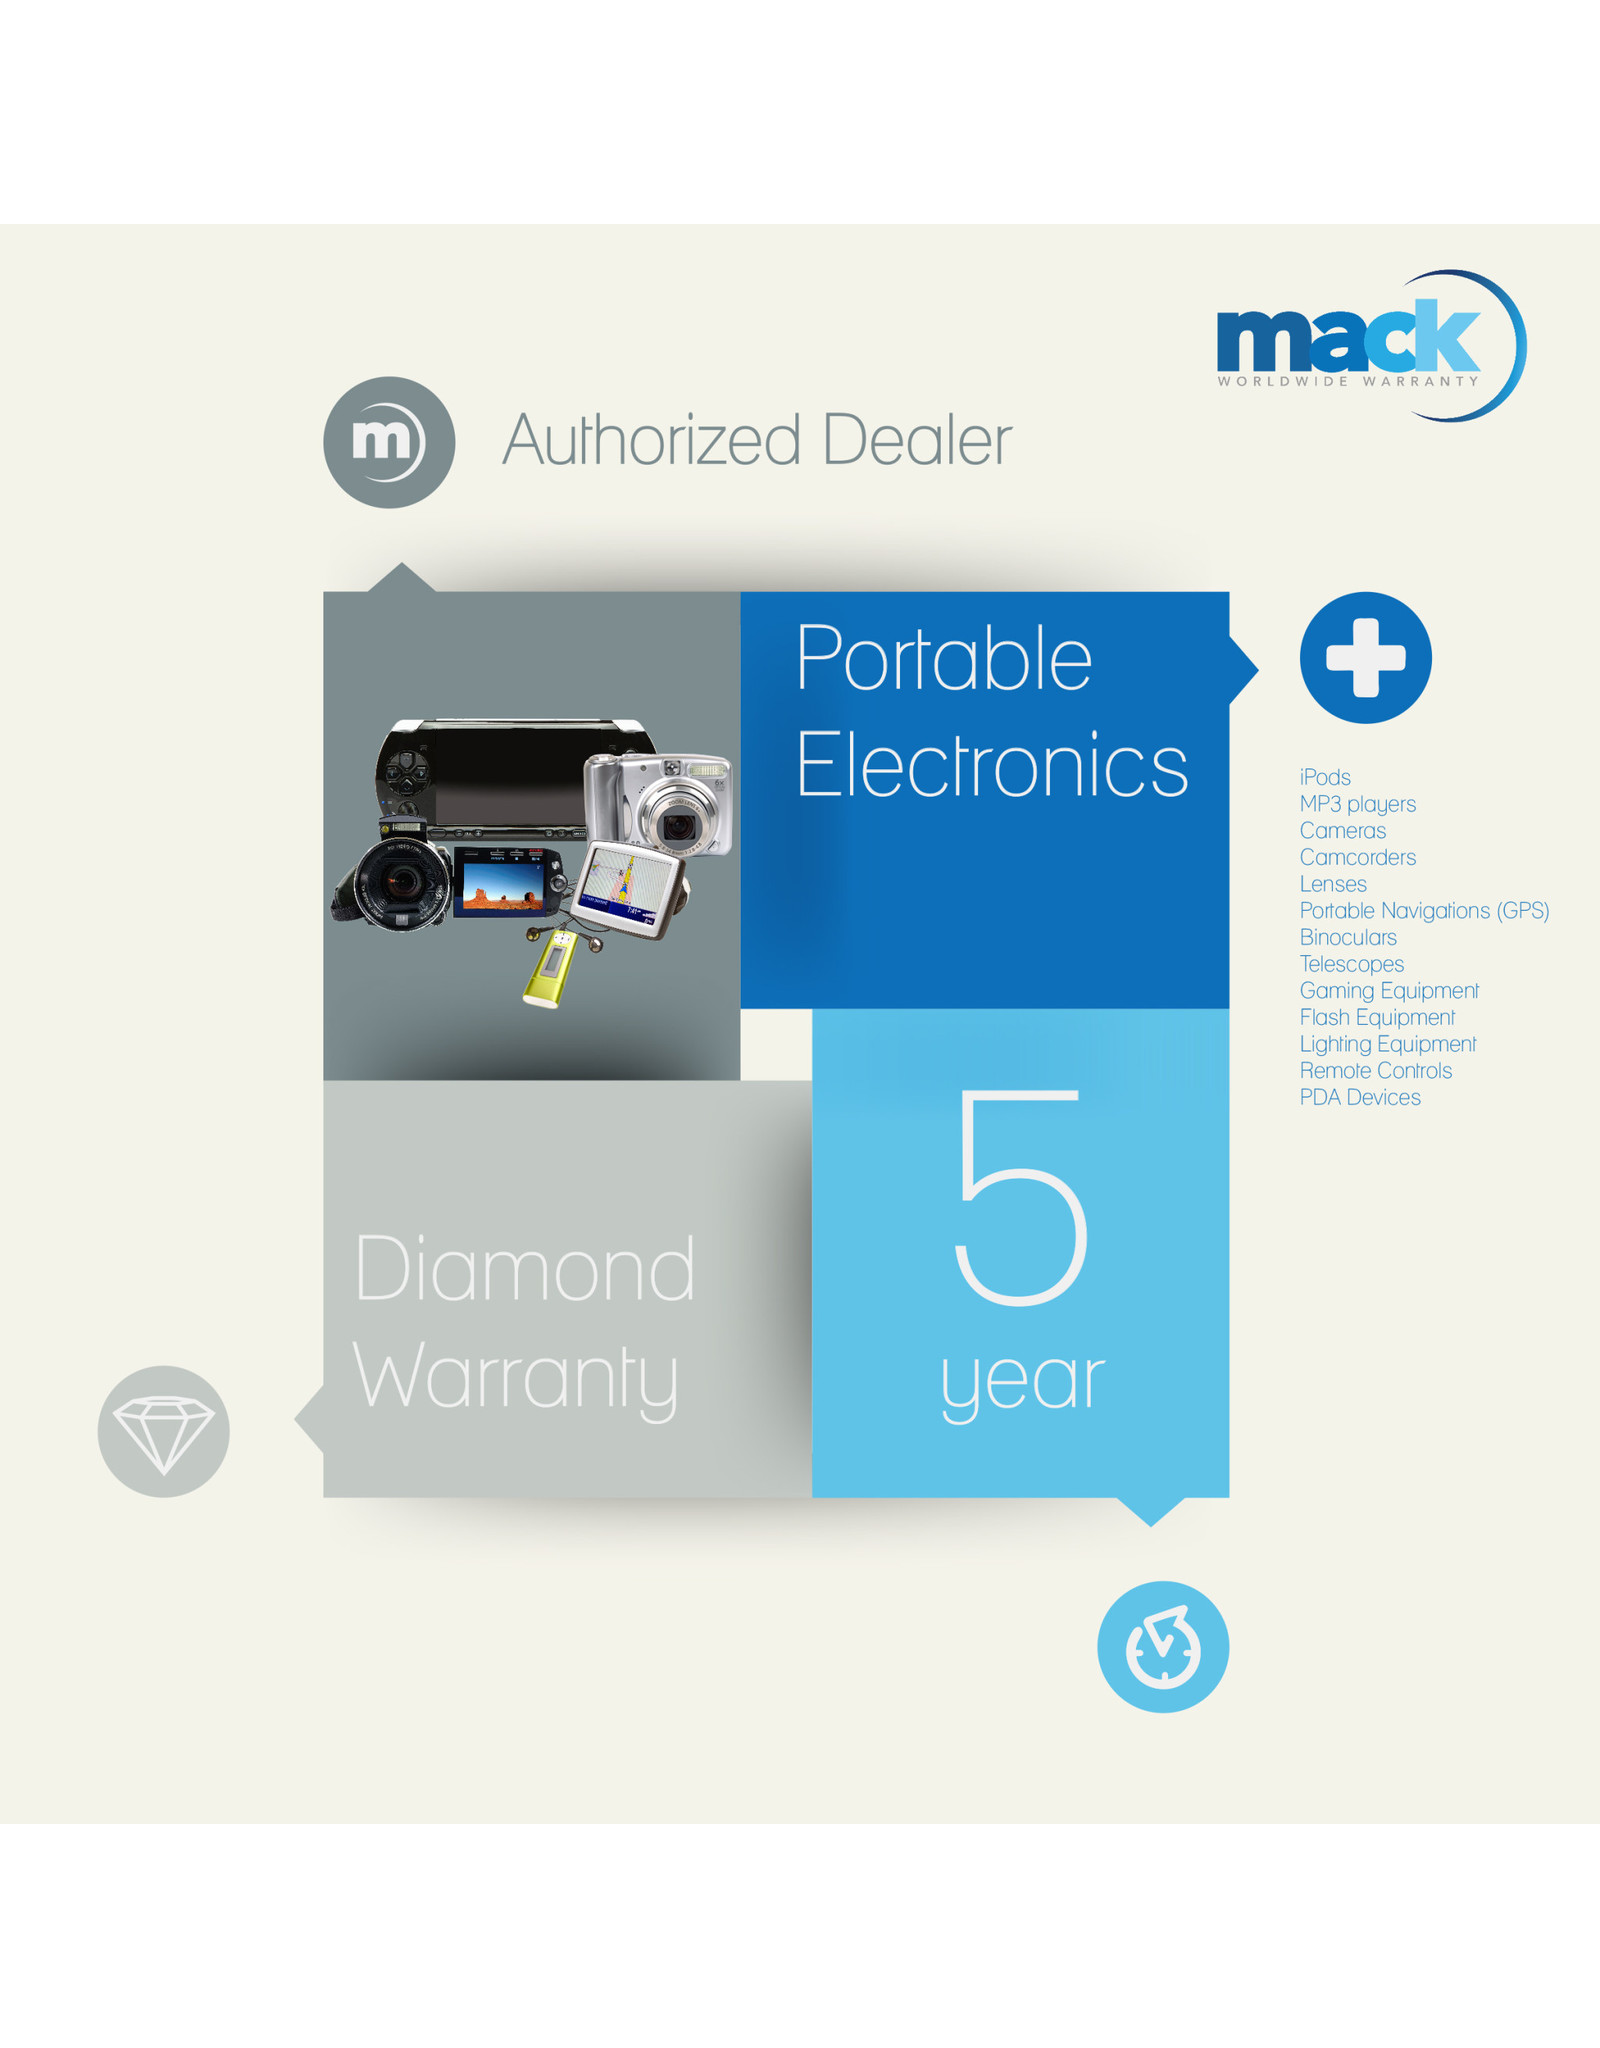 5YR Diamond Warranty for Products Costing less than $250